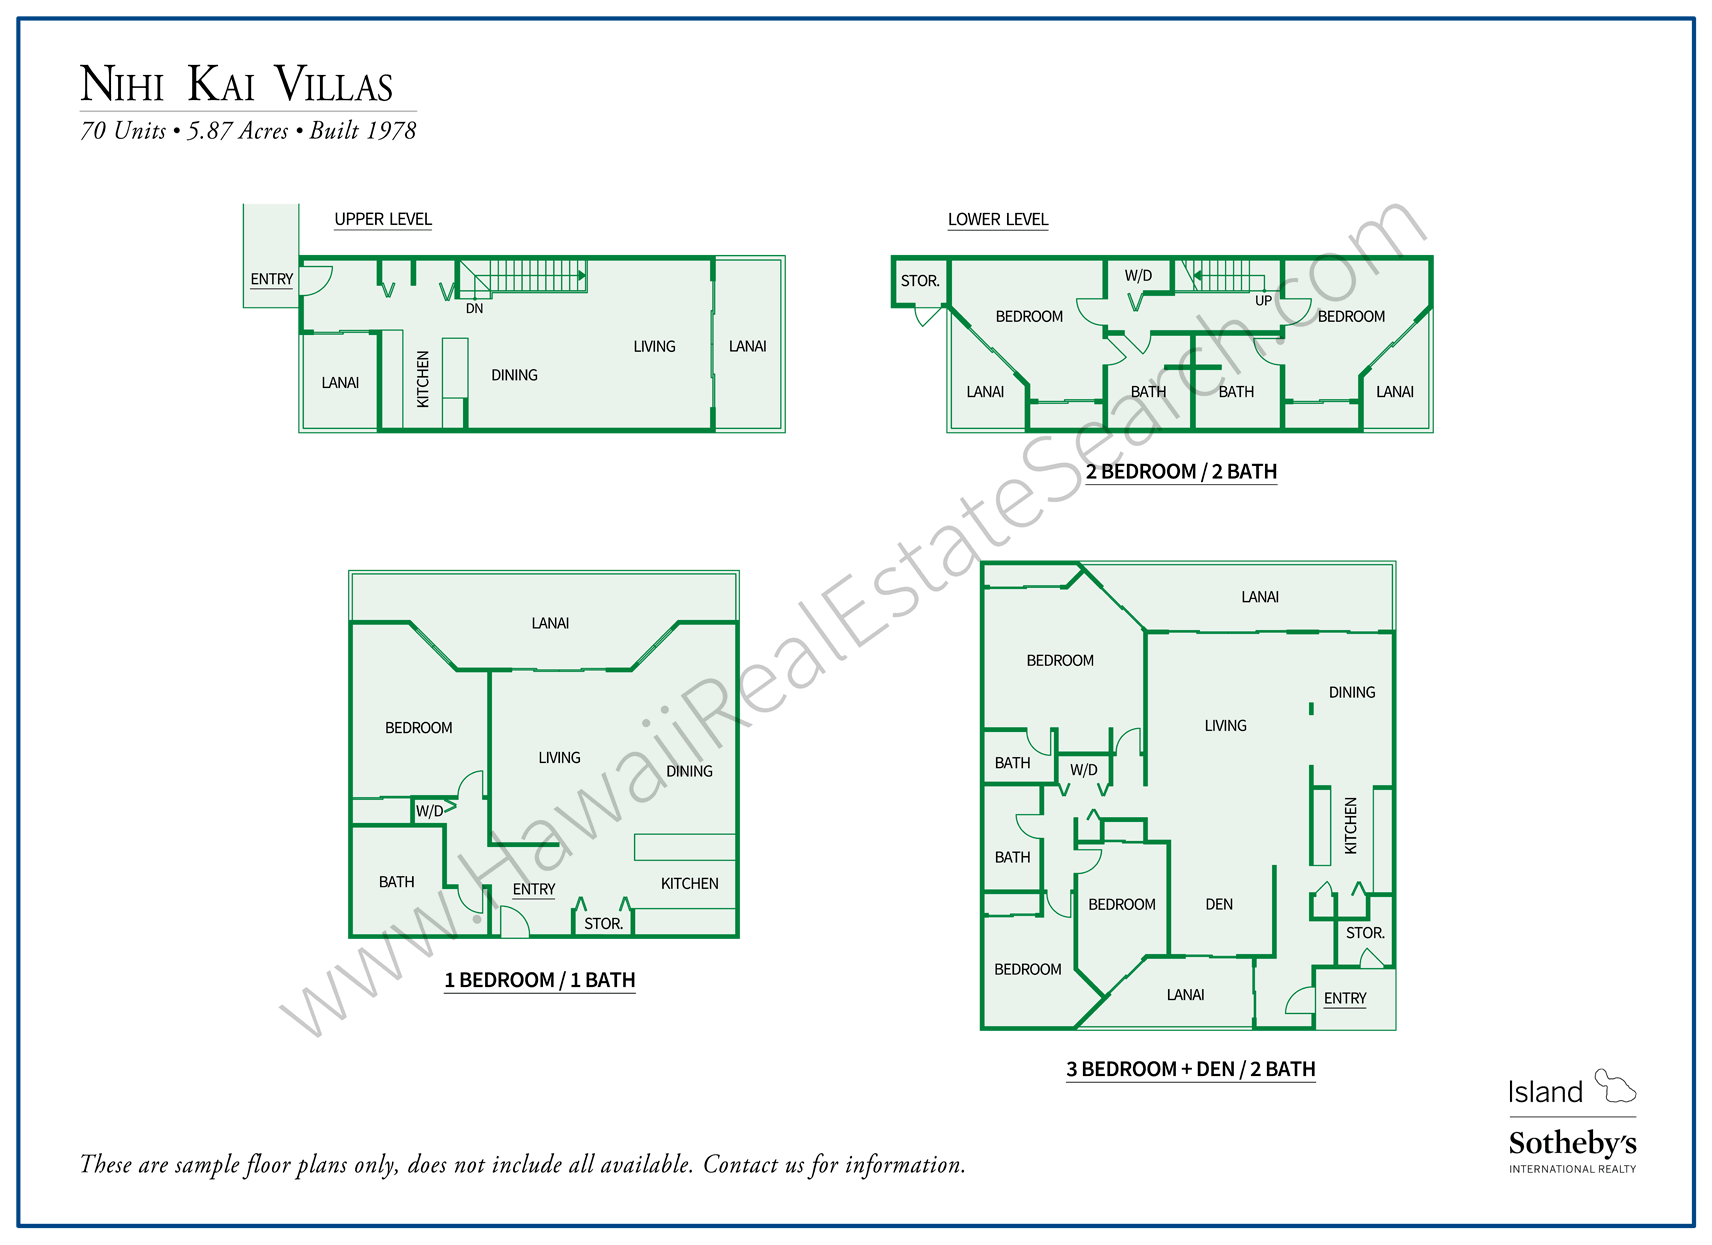 Nihi Kai Villas Floor Plans Updated